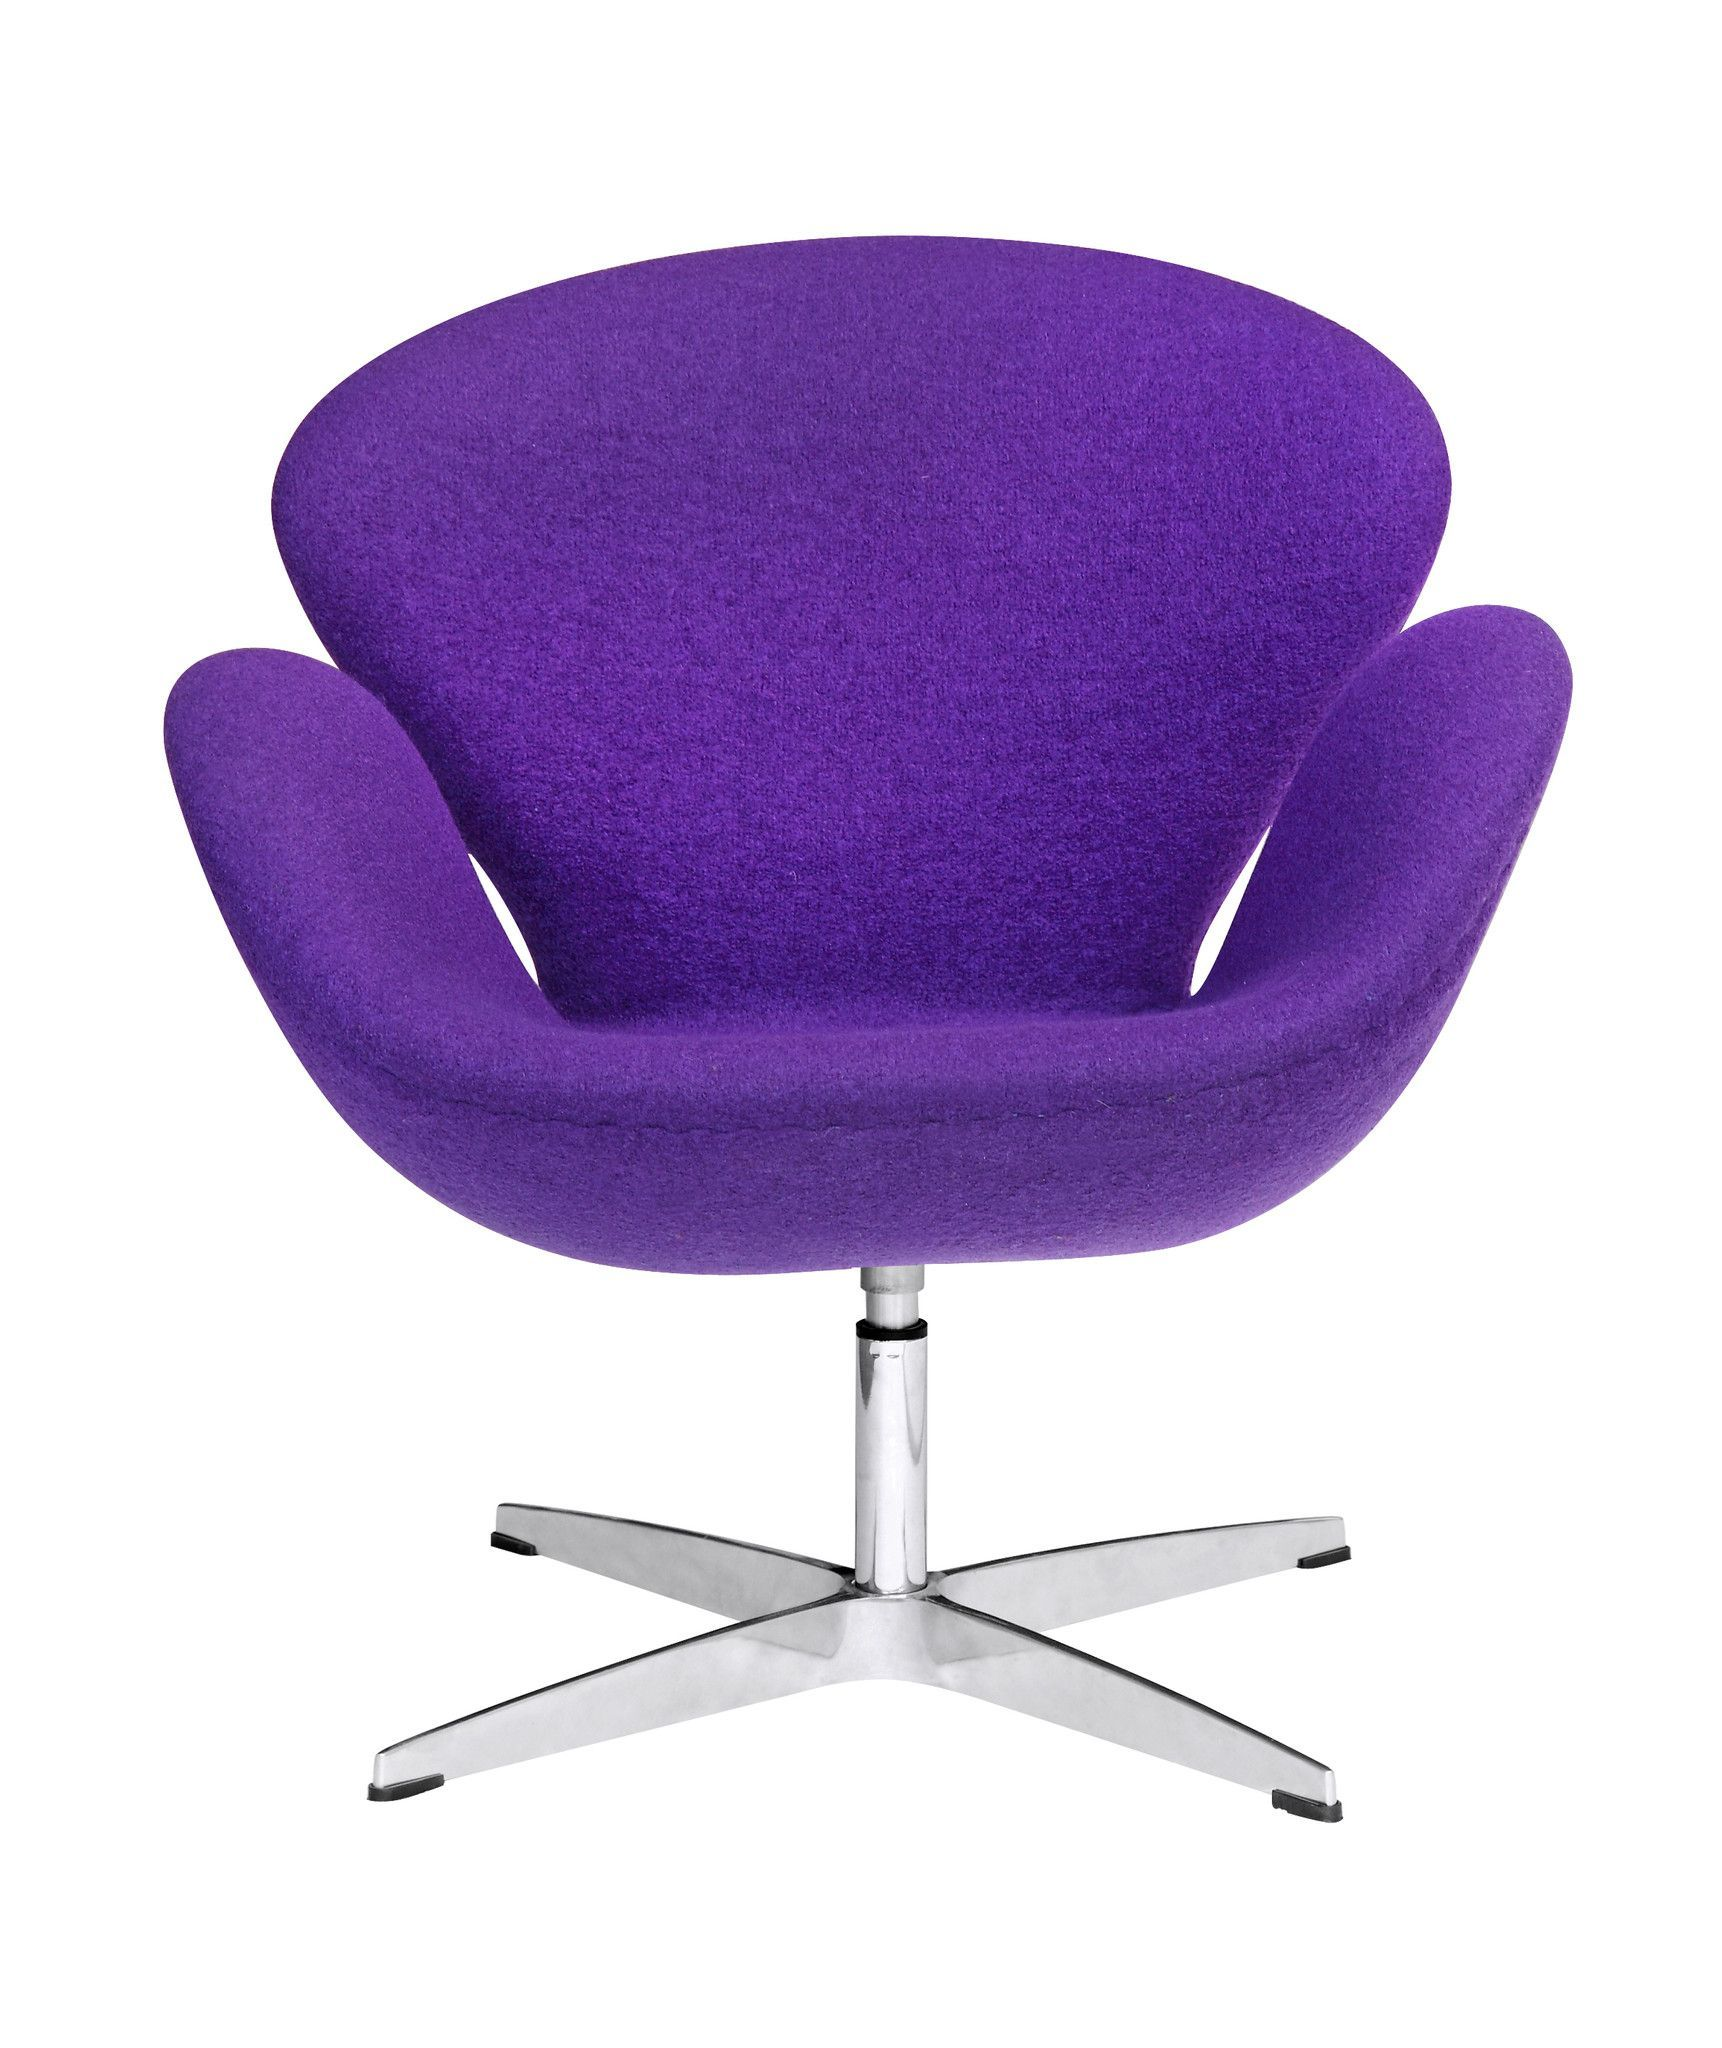 Arne Jacobsen Swan Style Chair Fabric, Purple